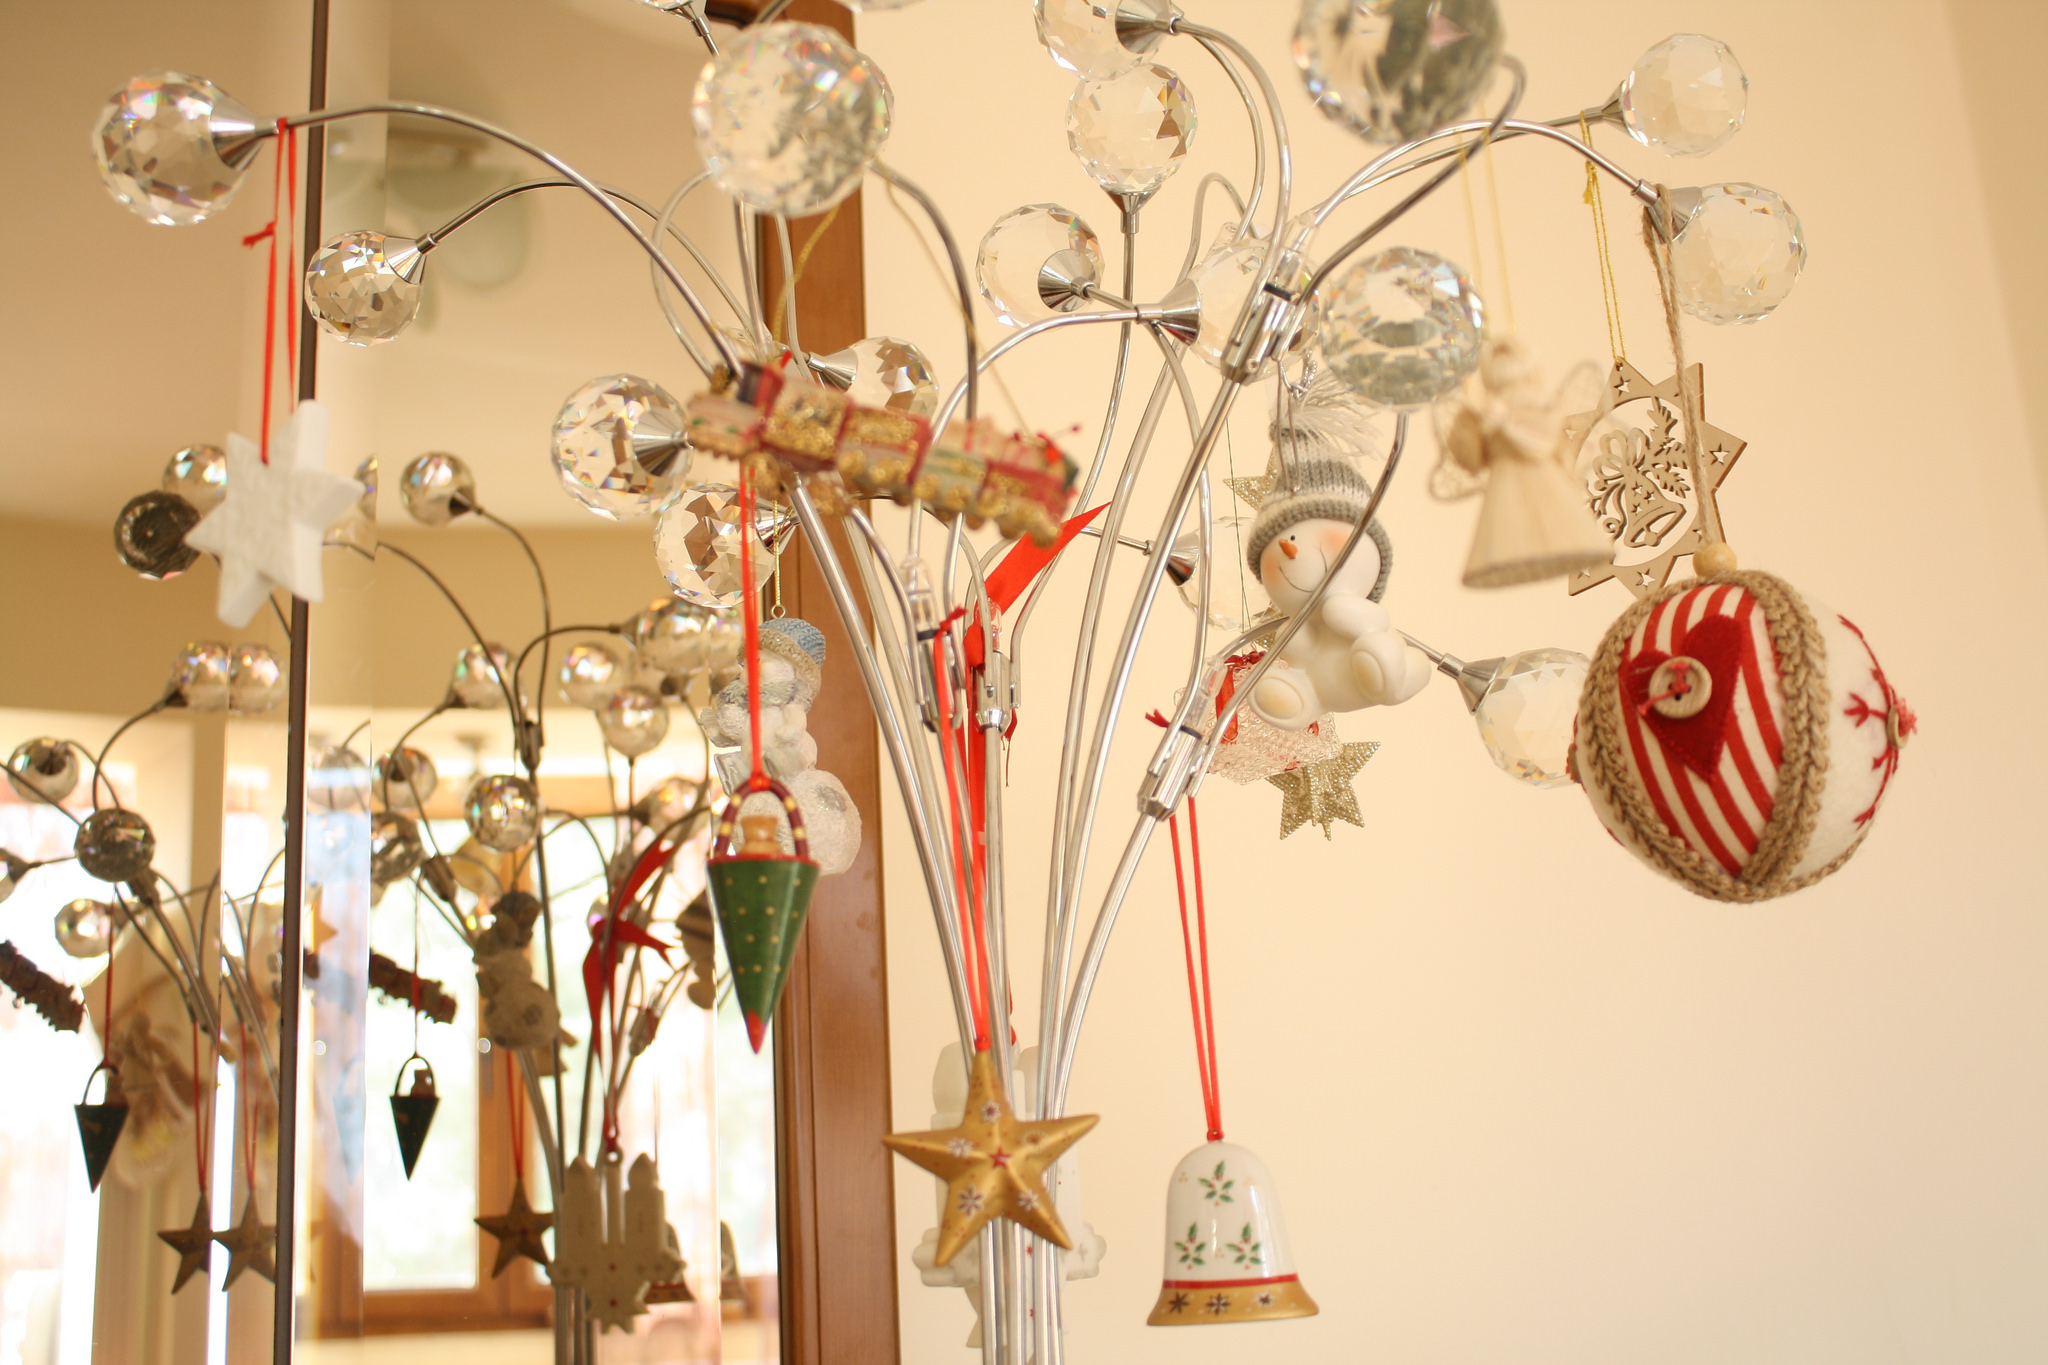 decoration items in bangalore dating